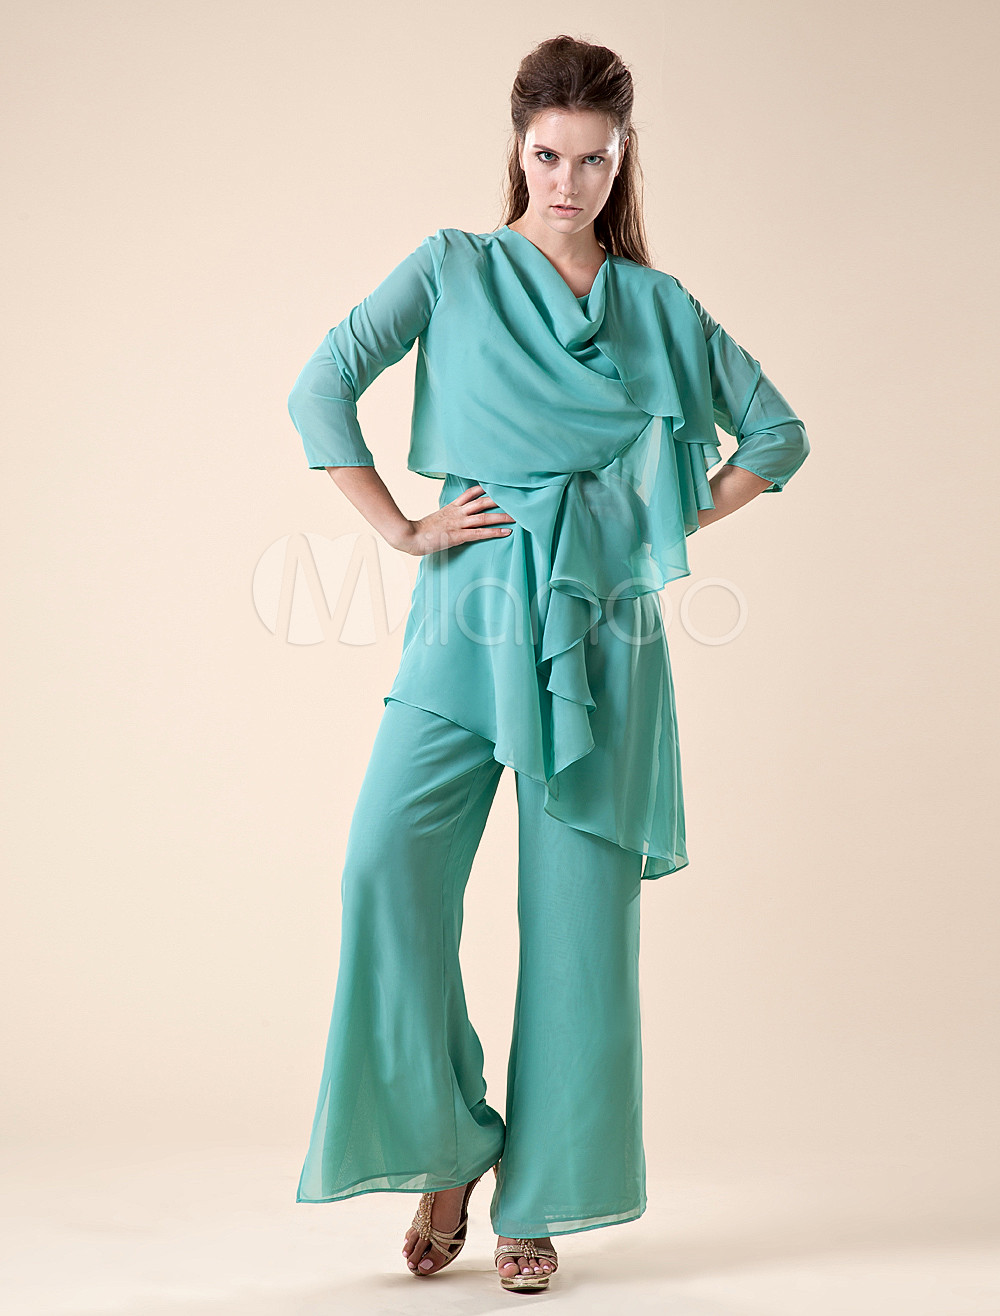 Mother Of The Bride Pant Suits Turquoise Chiffon Party Outfit Set In 3 Piece